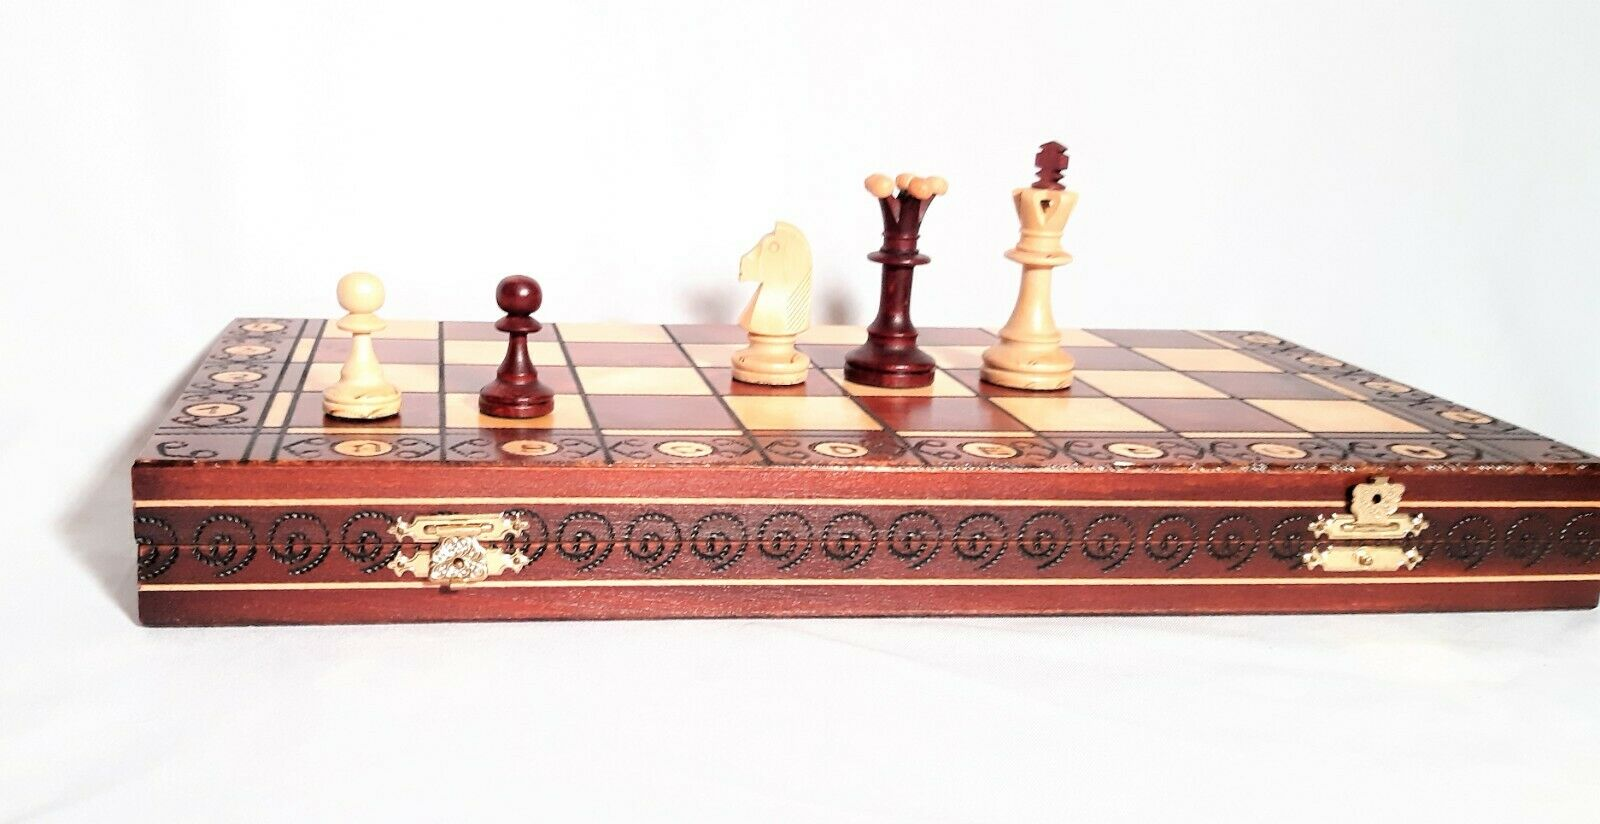 chess set consul chess pieces board wooden